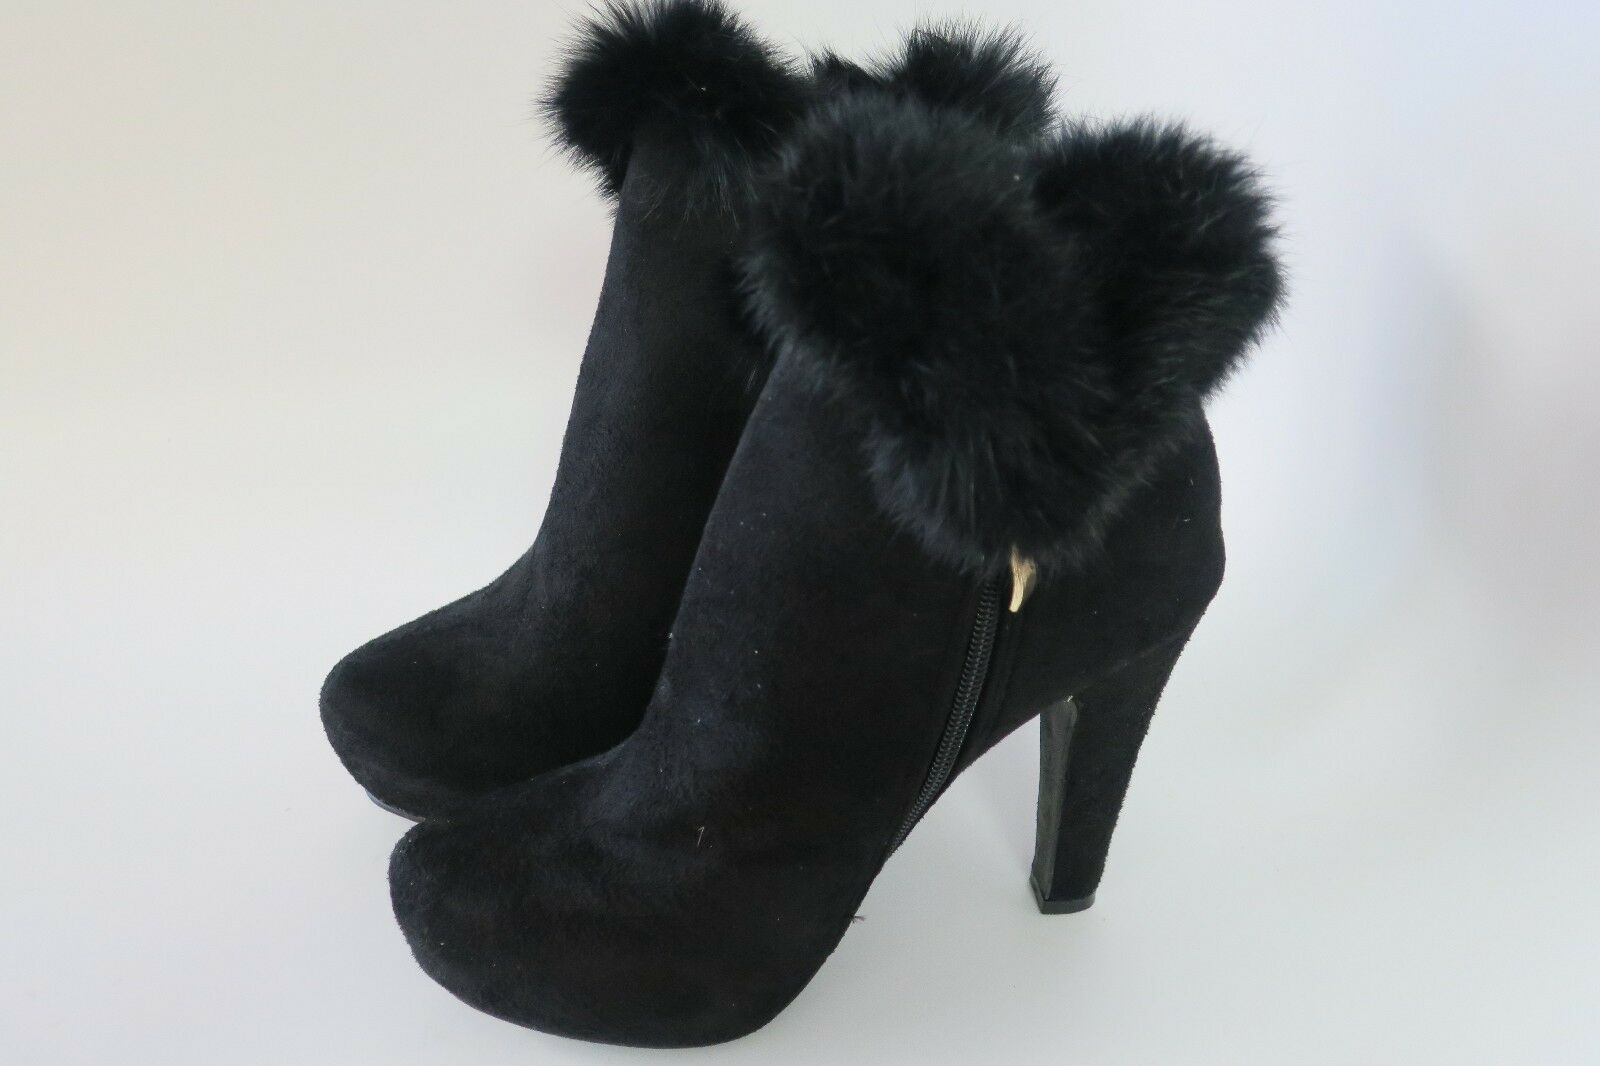 DbDk Women's Furry-6 Faux Suede Black Ankle High Heel Boot